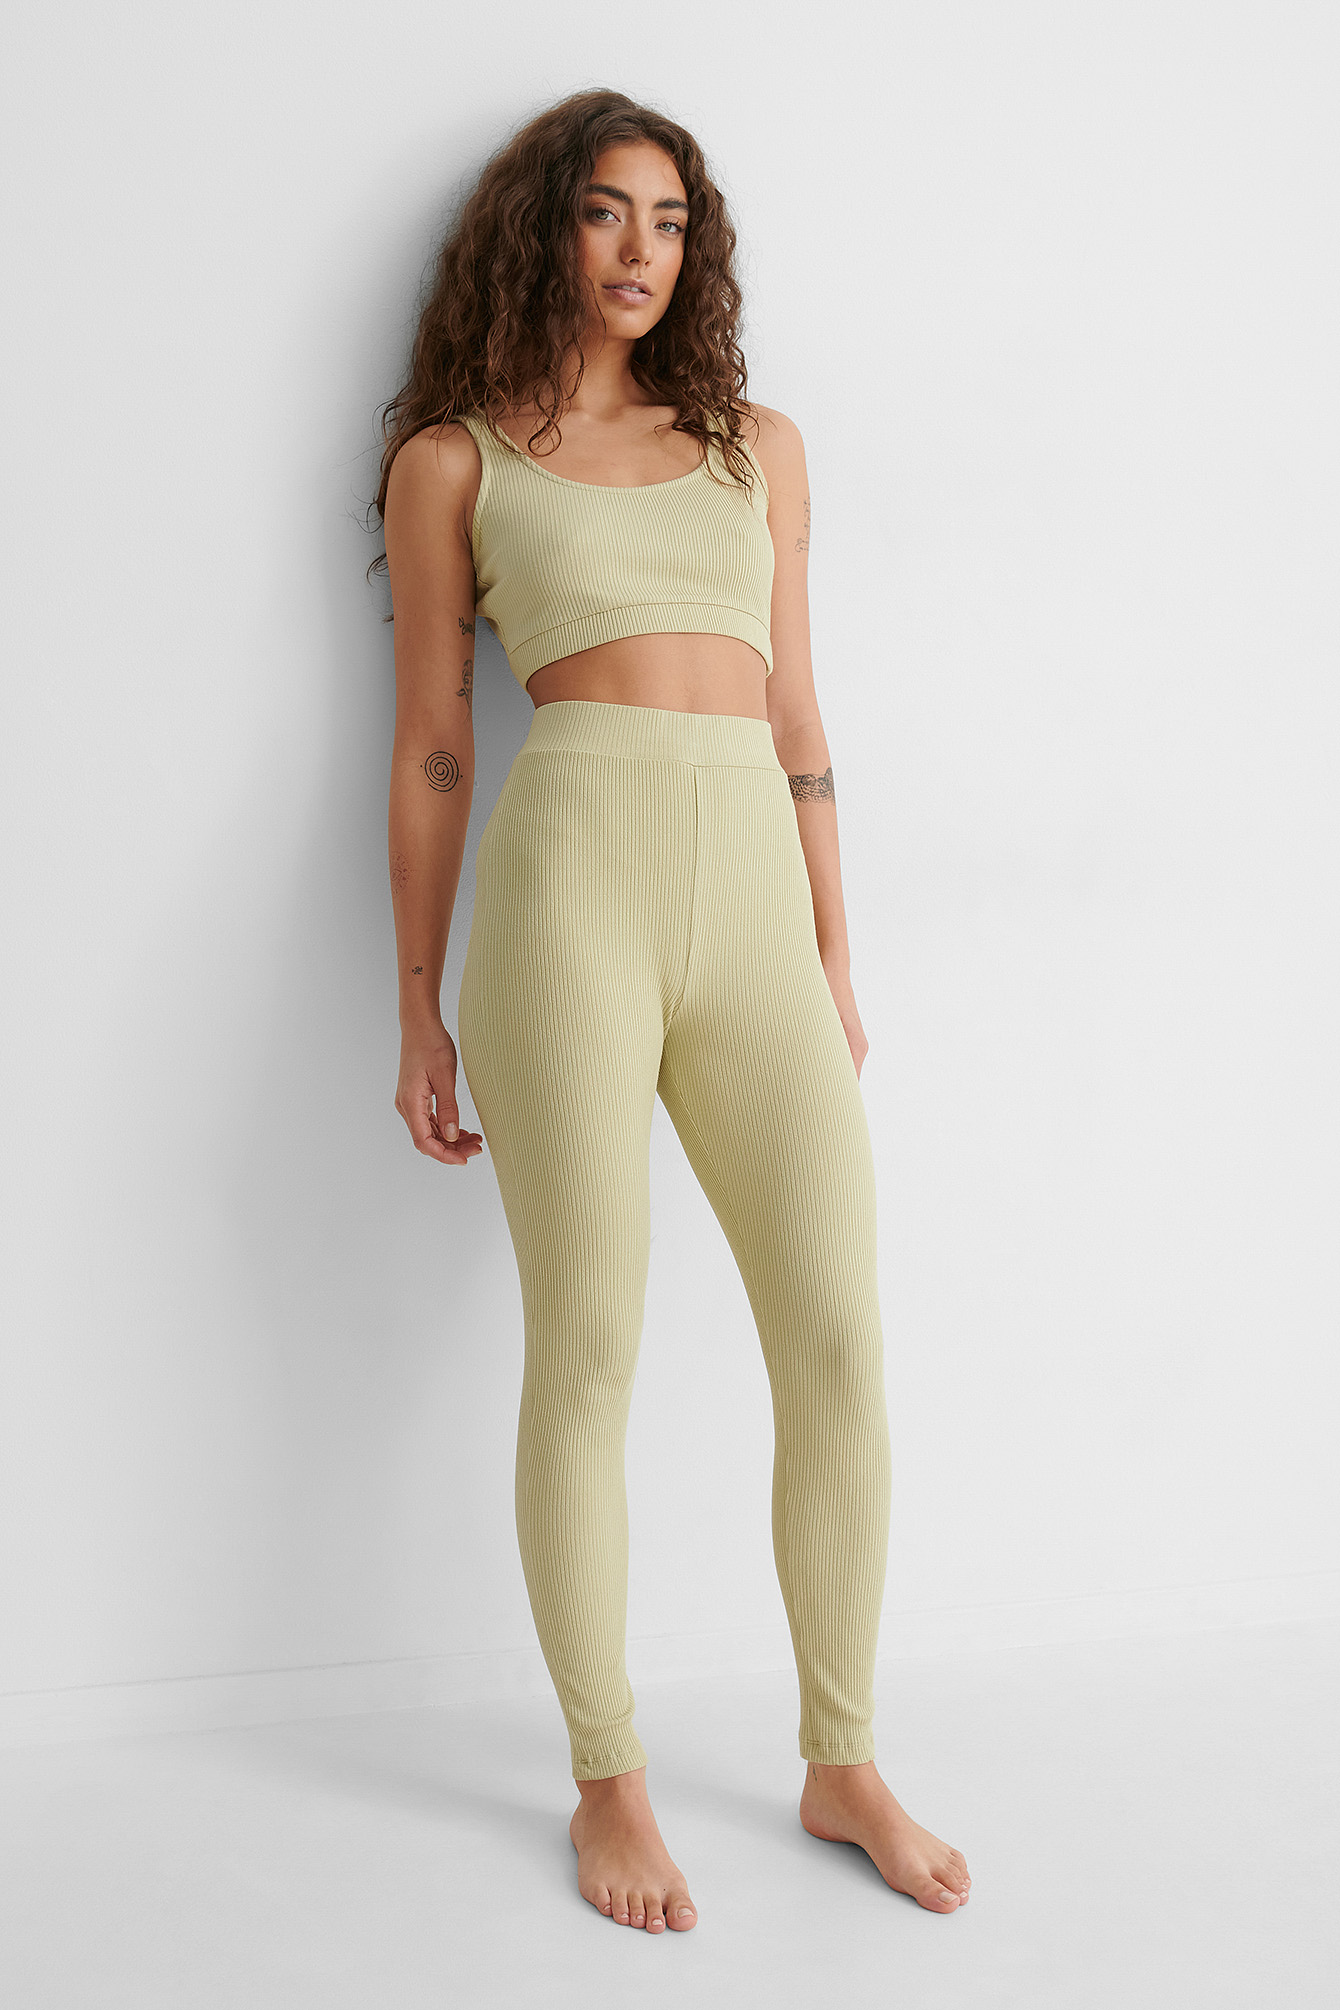 Beige/Khaki Leggings